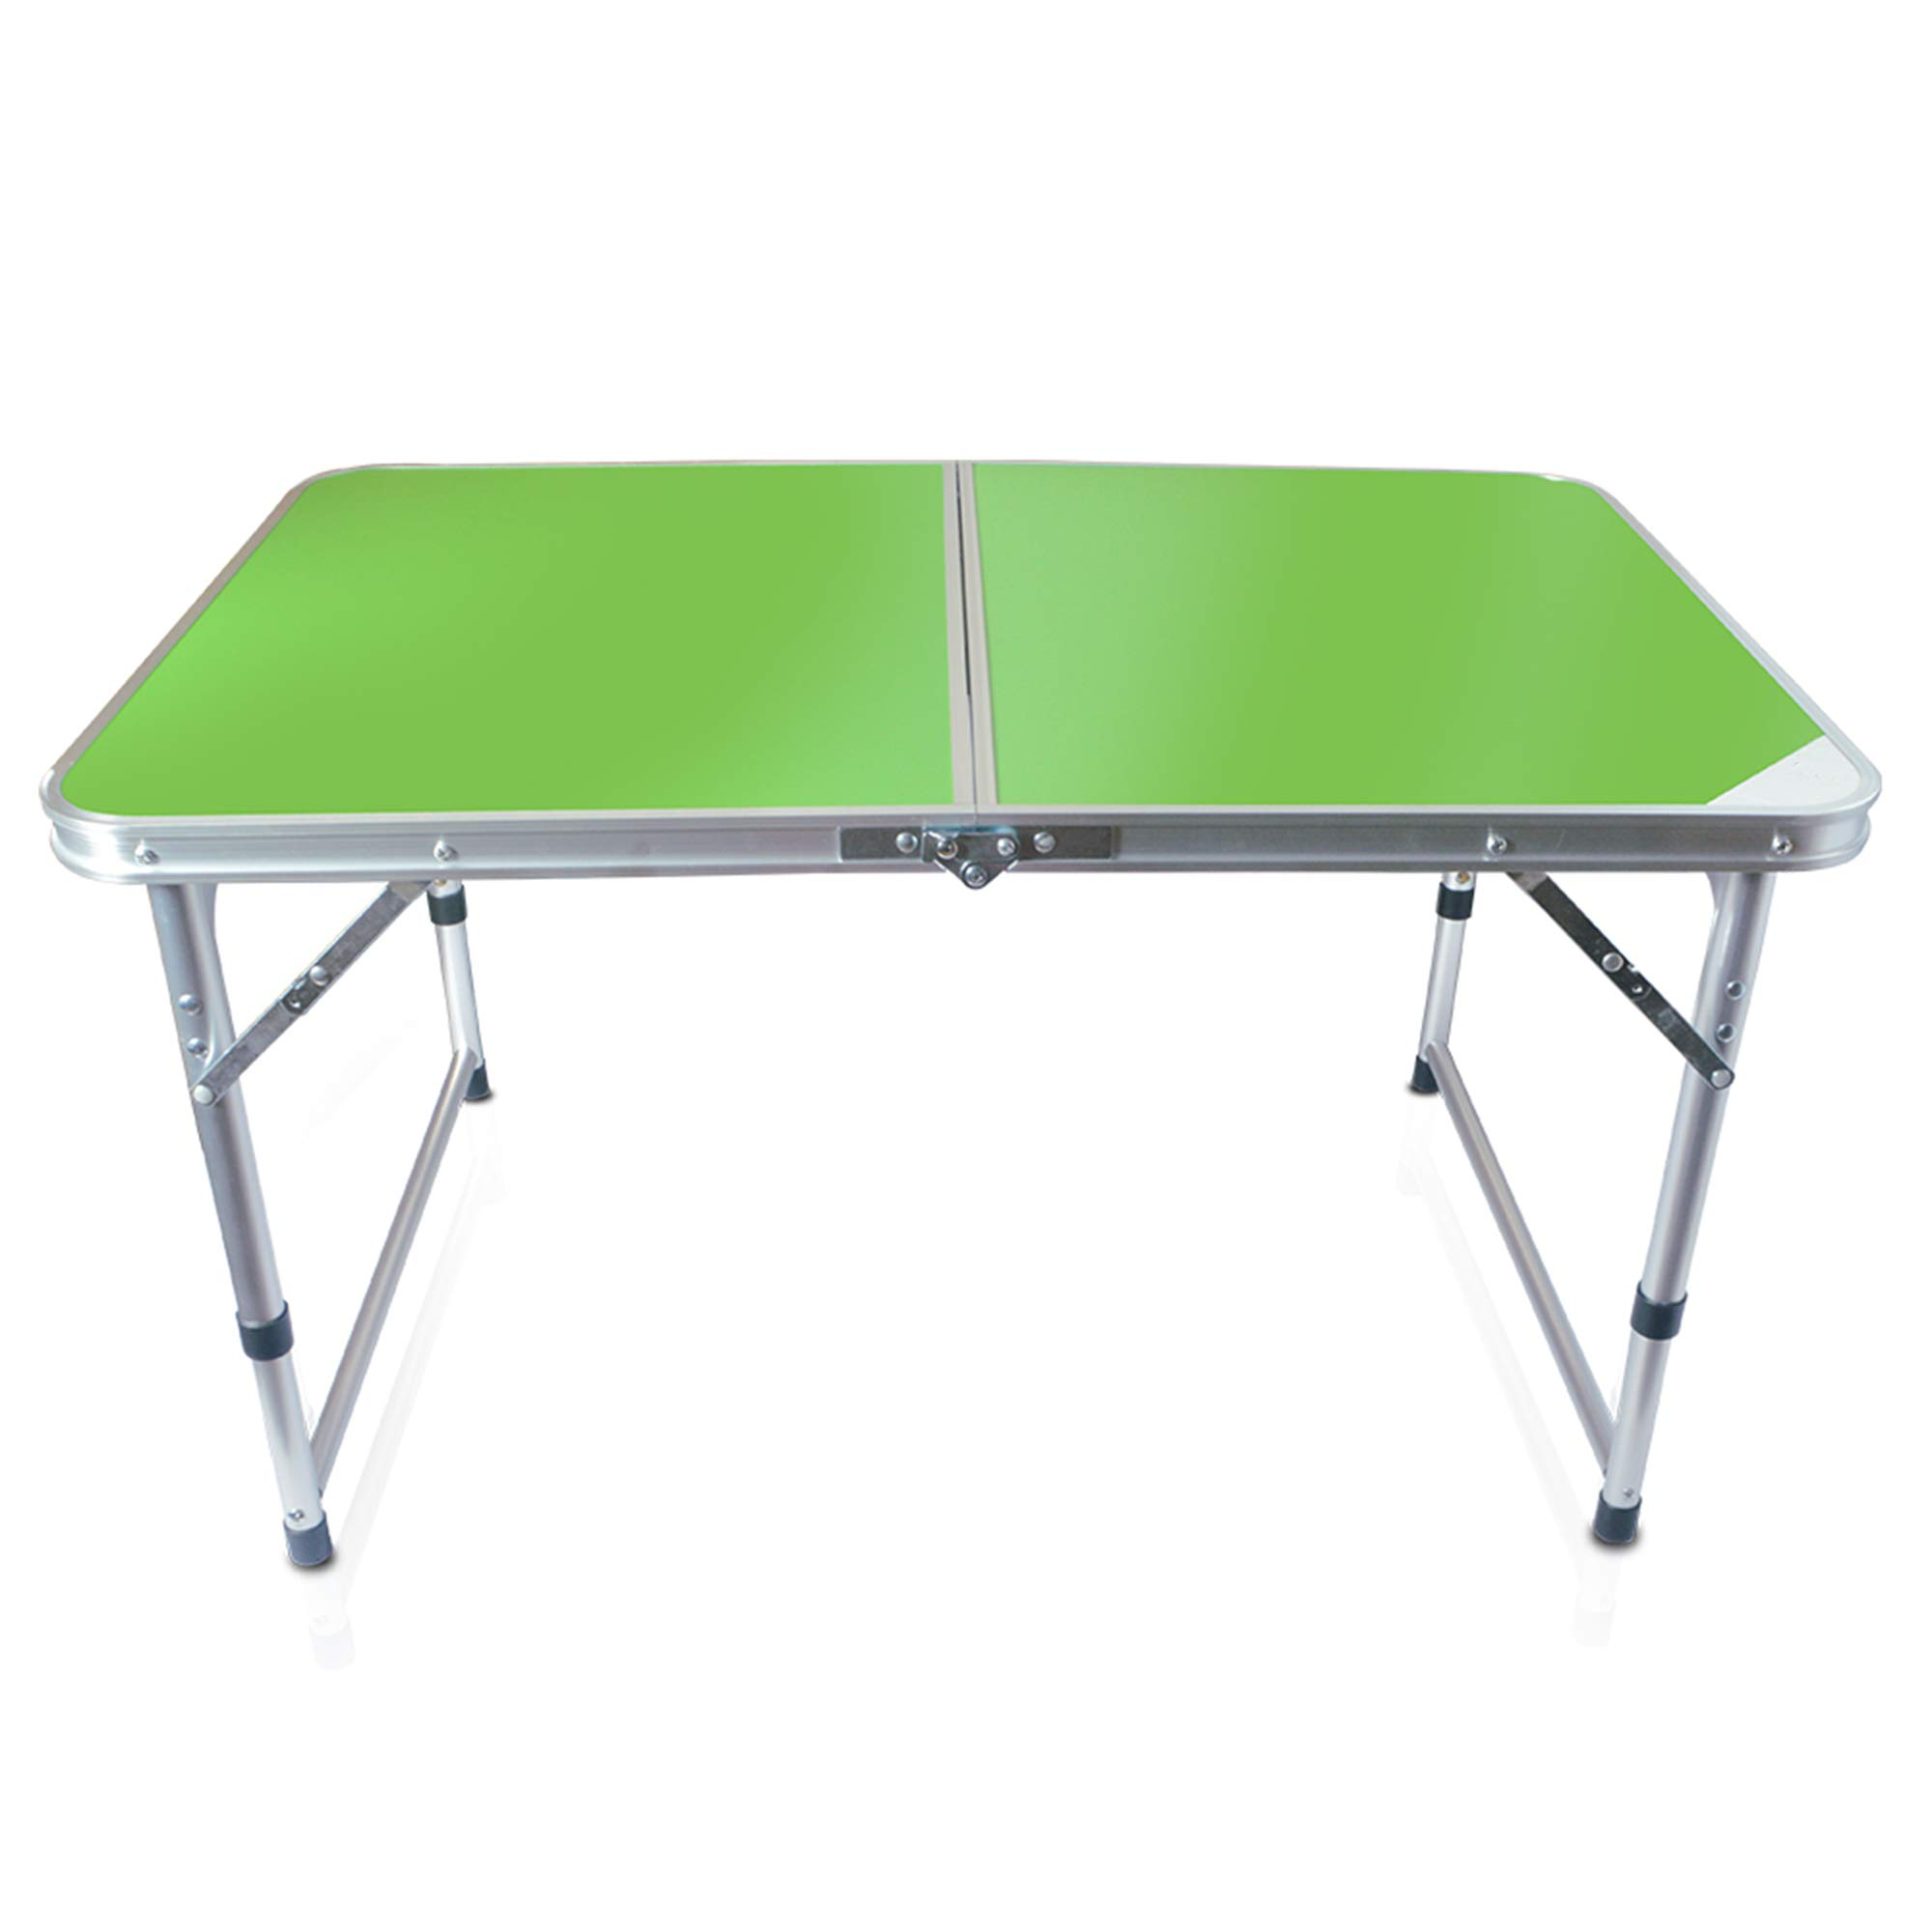 Folding Table, Outdoor Table Adjustable Height Camping Portable Folding Table Square, Picnic Table Camping Lightweight with Extended Legs, Green by Hengtong